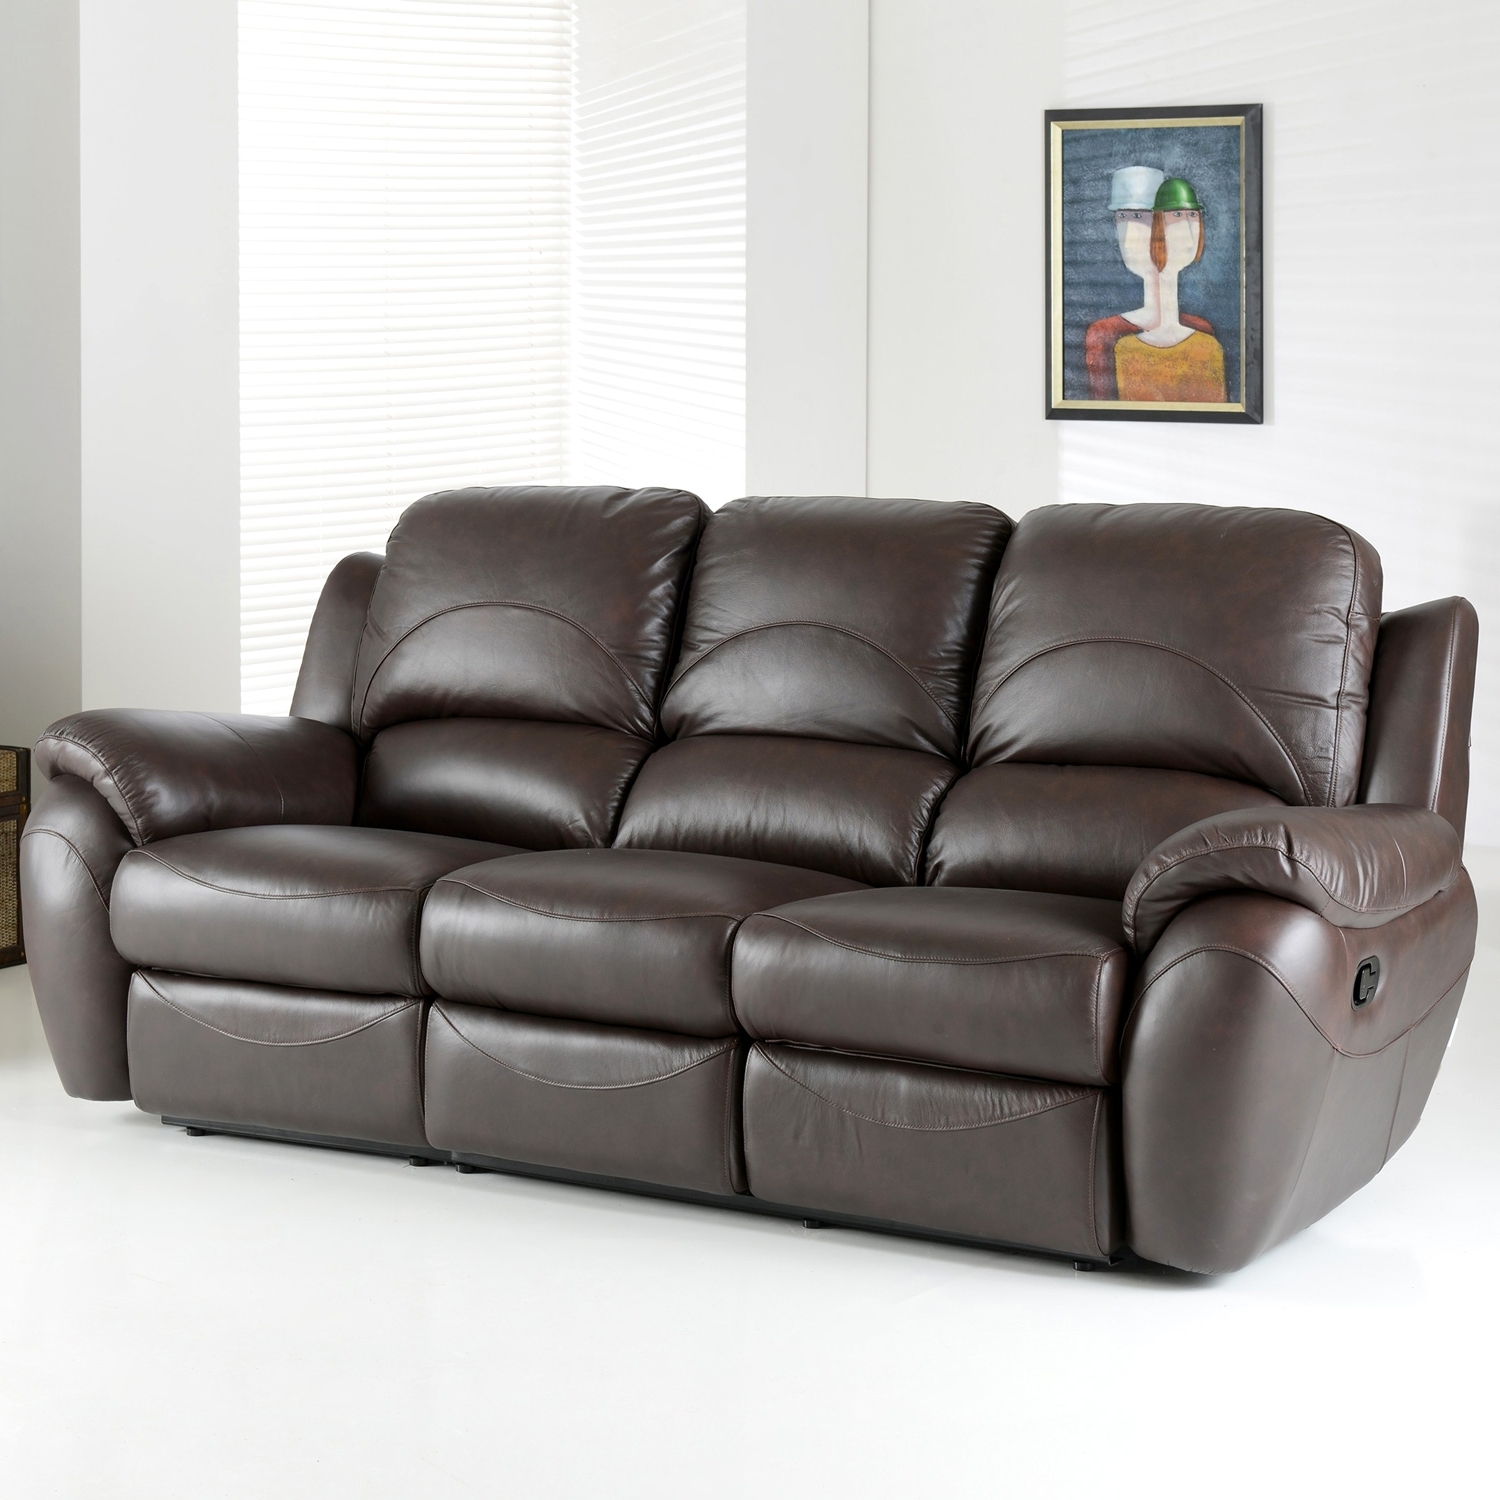 3 Seater Leather Sofas With Regard To Well Known 3 Seater Leather Recliner Sofa Image (View 10 of 15)